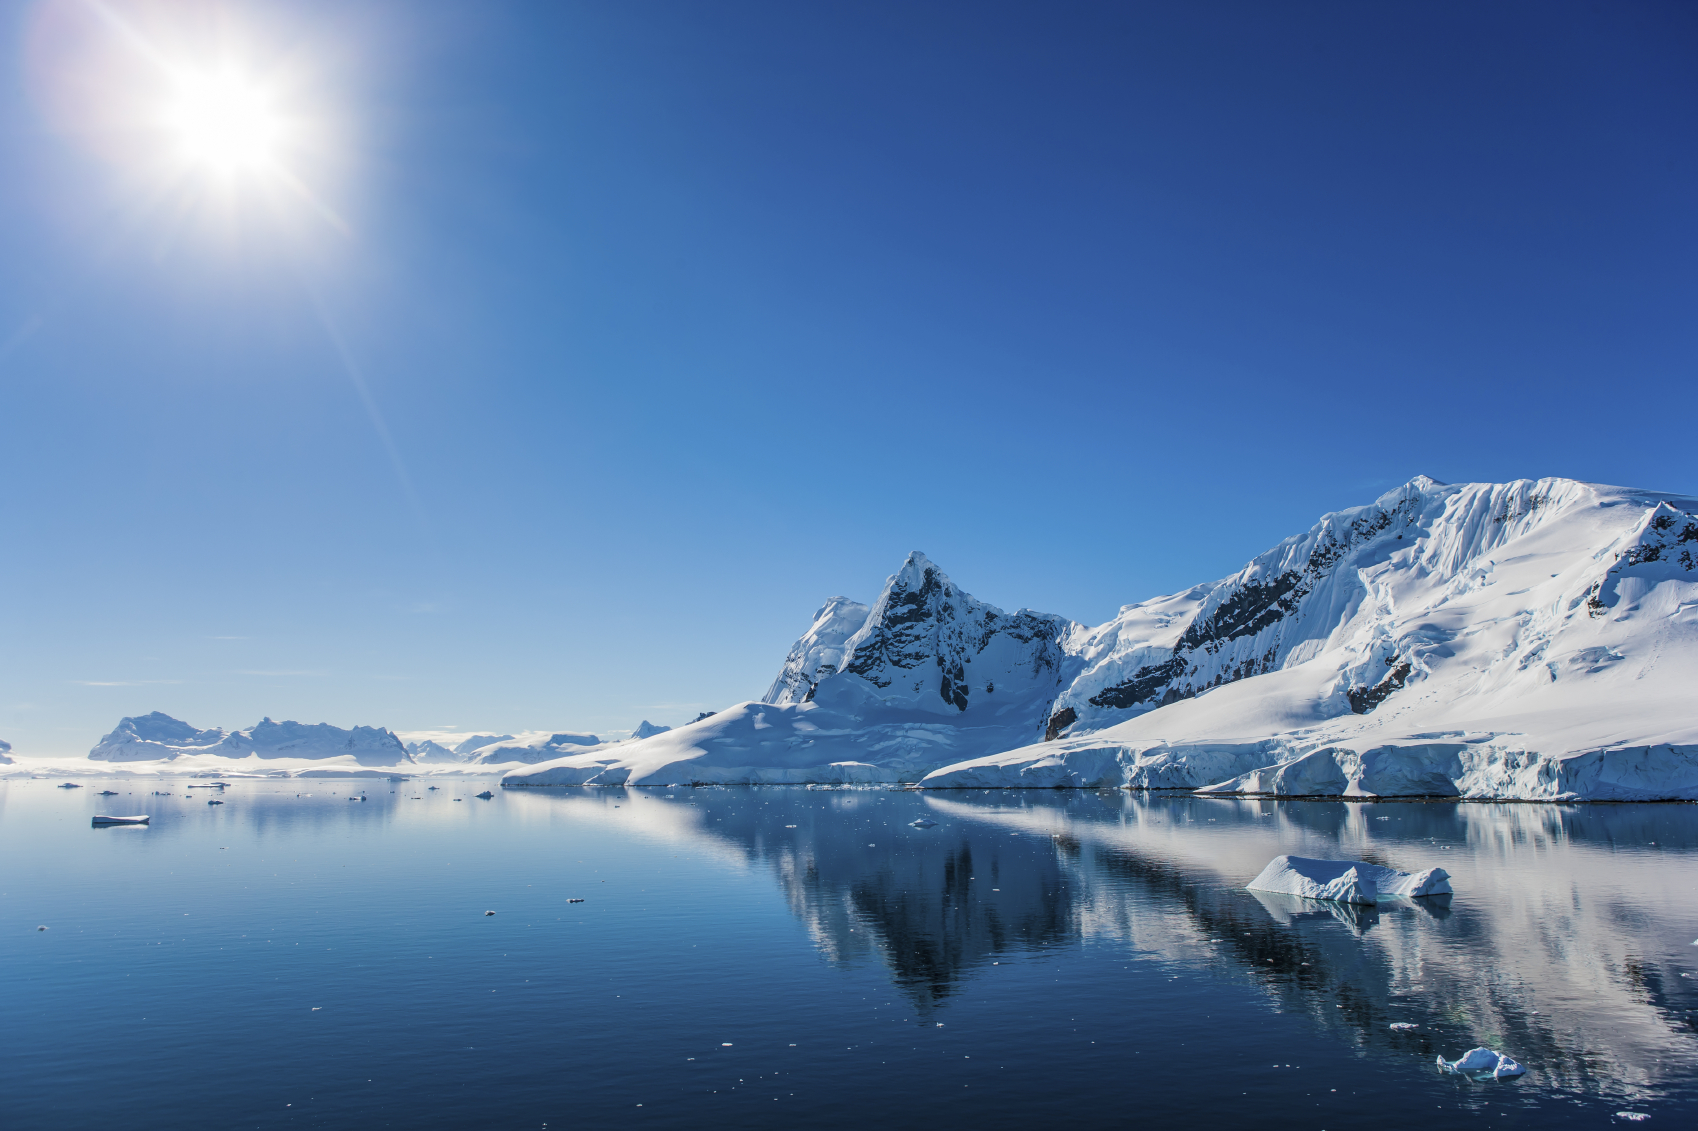 Antarctica is home to the world's grandest icebergs.